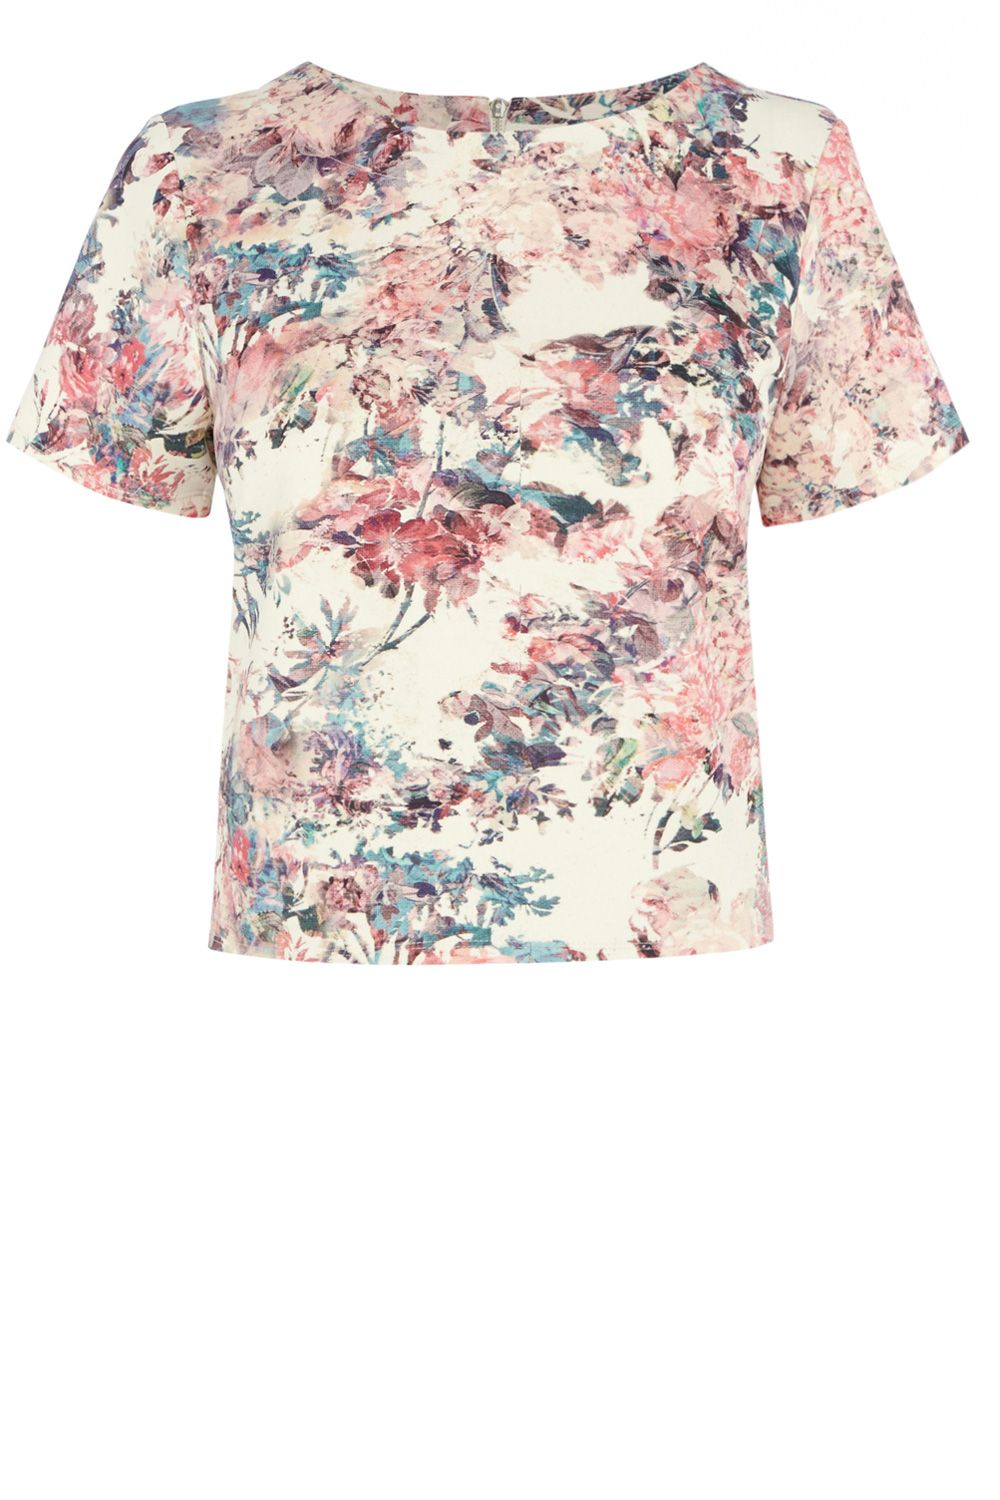 Scuba floral print co-ord top